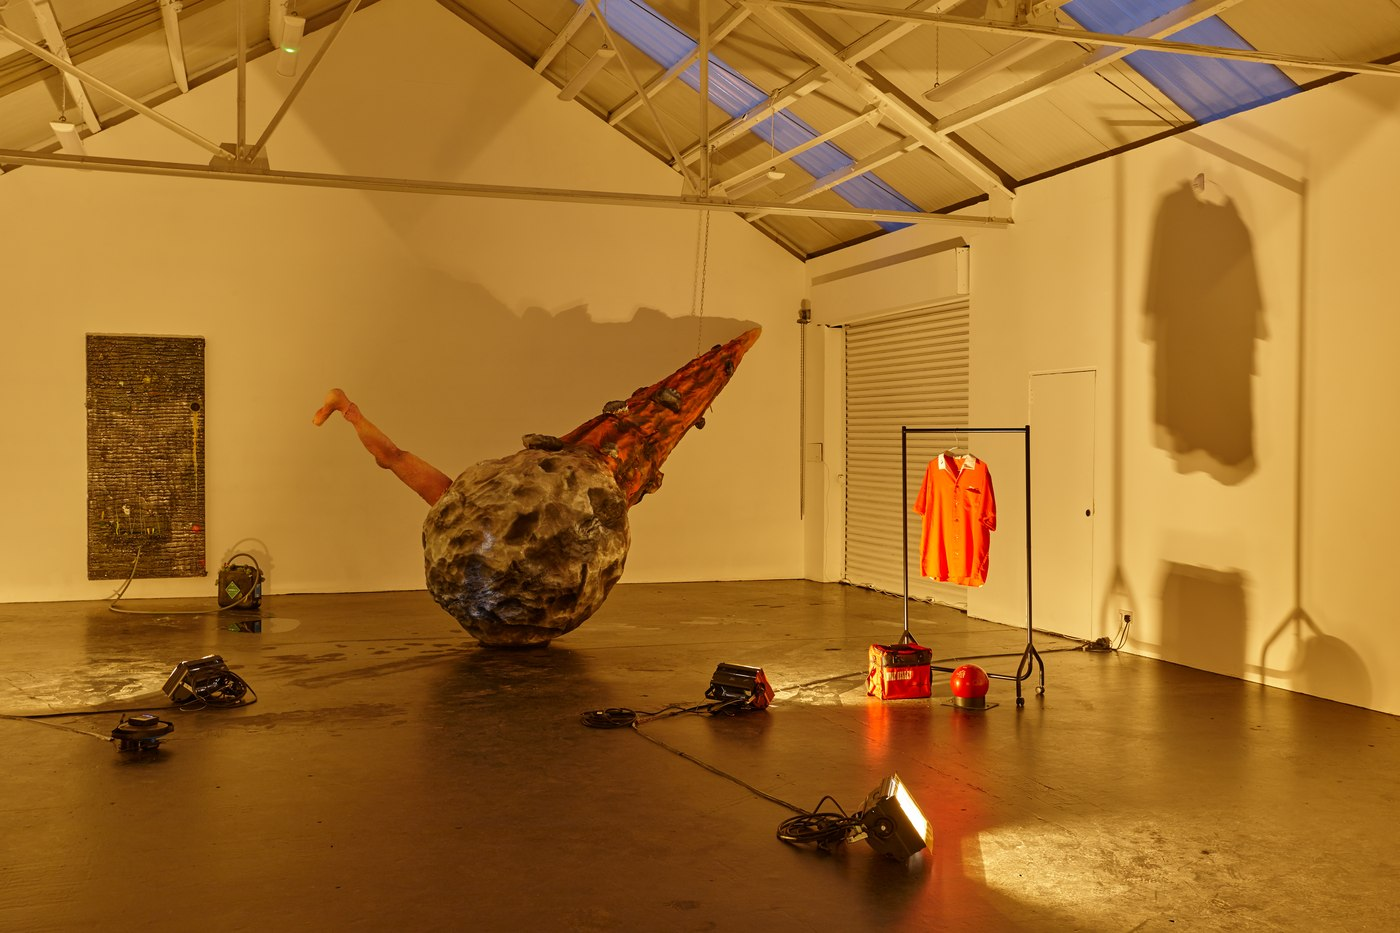 dead among the dead! - Installation View 3